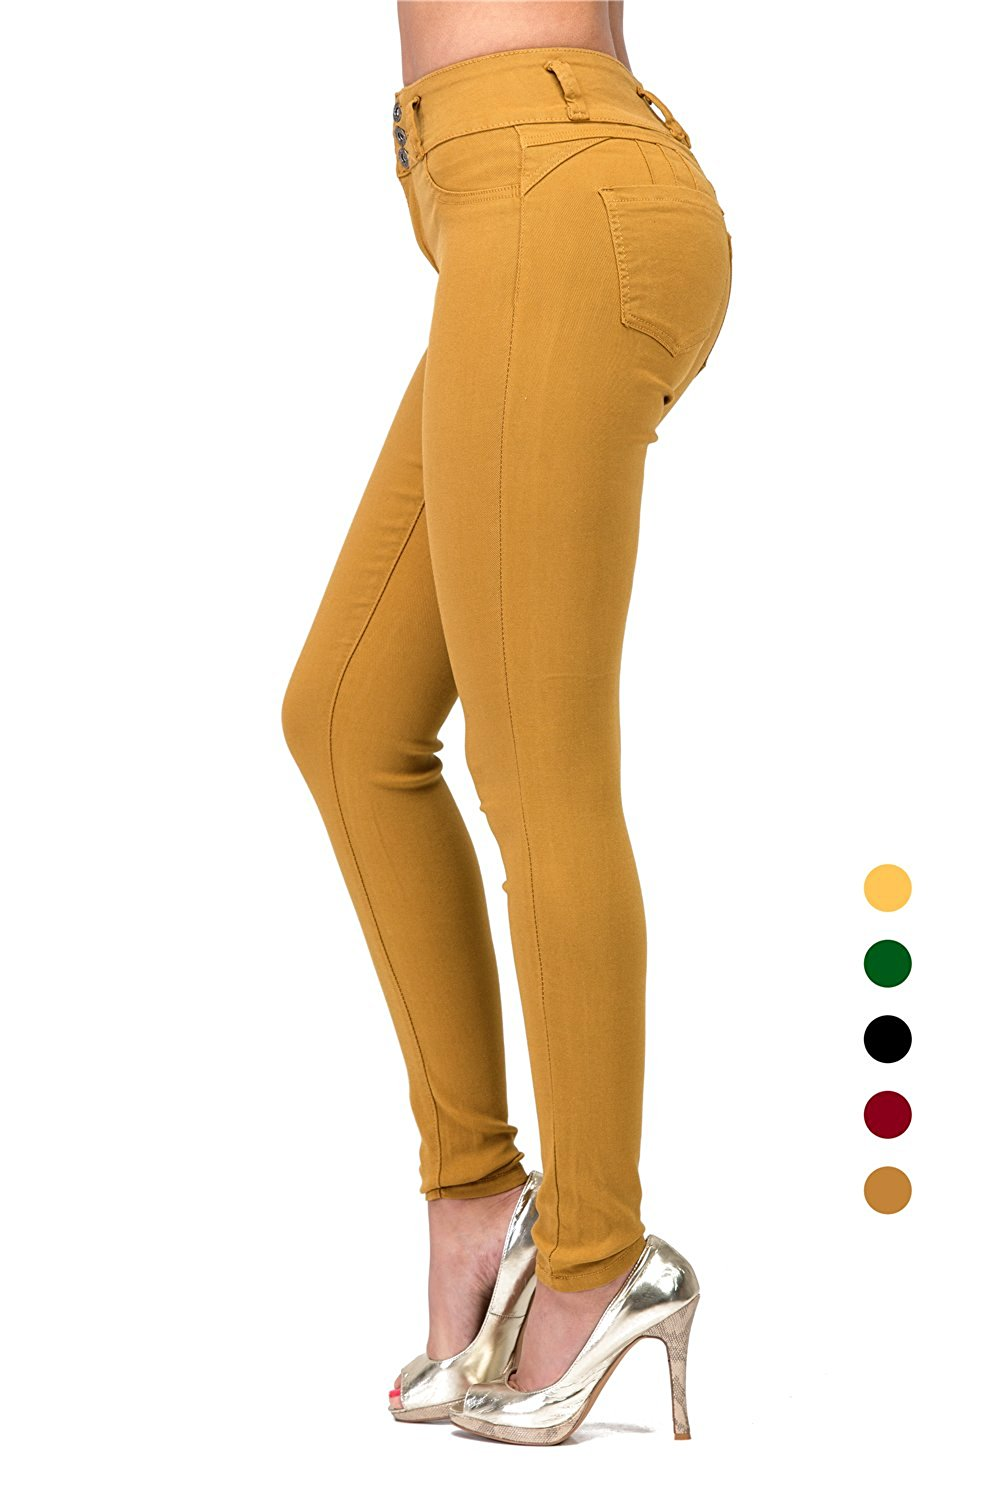 08692b4c09c L.B FASHION High Waisted Jeans Skinny Stretch Colored Pencil Pants Butt Lift  for Juniors Teen Grils